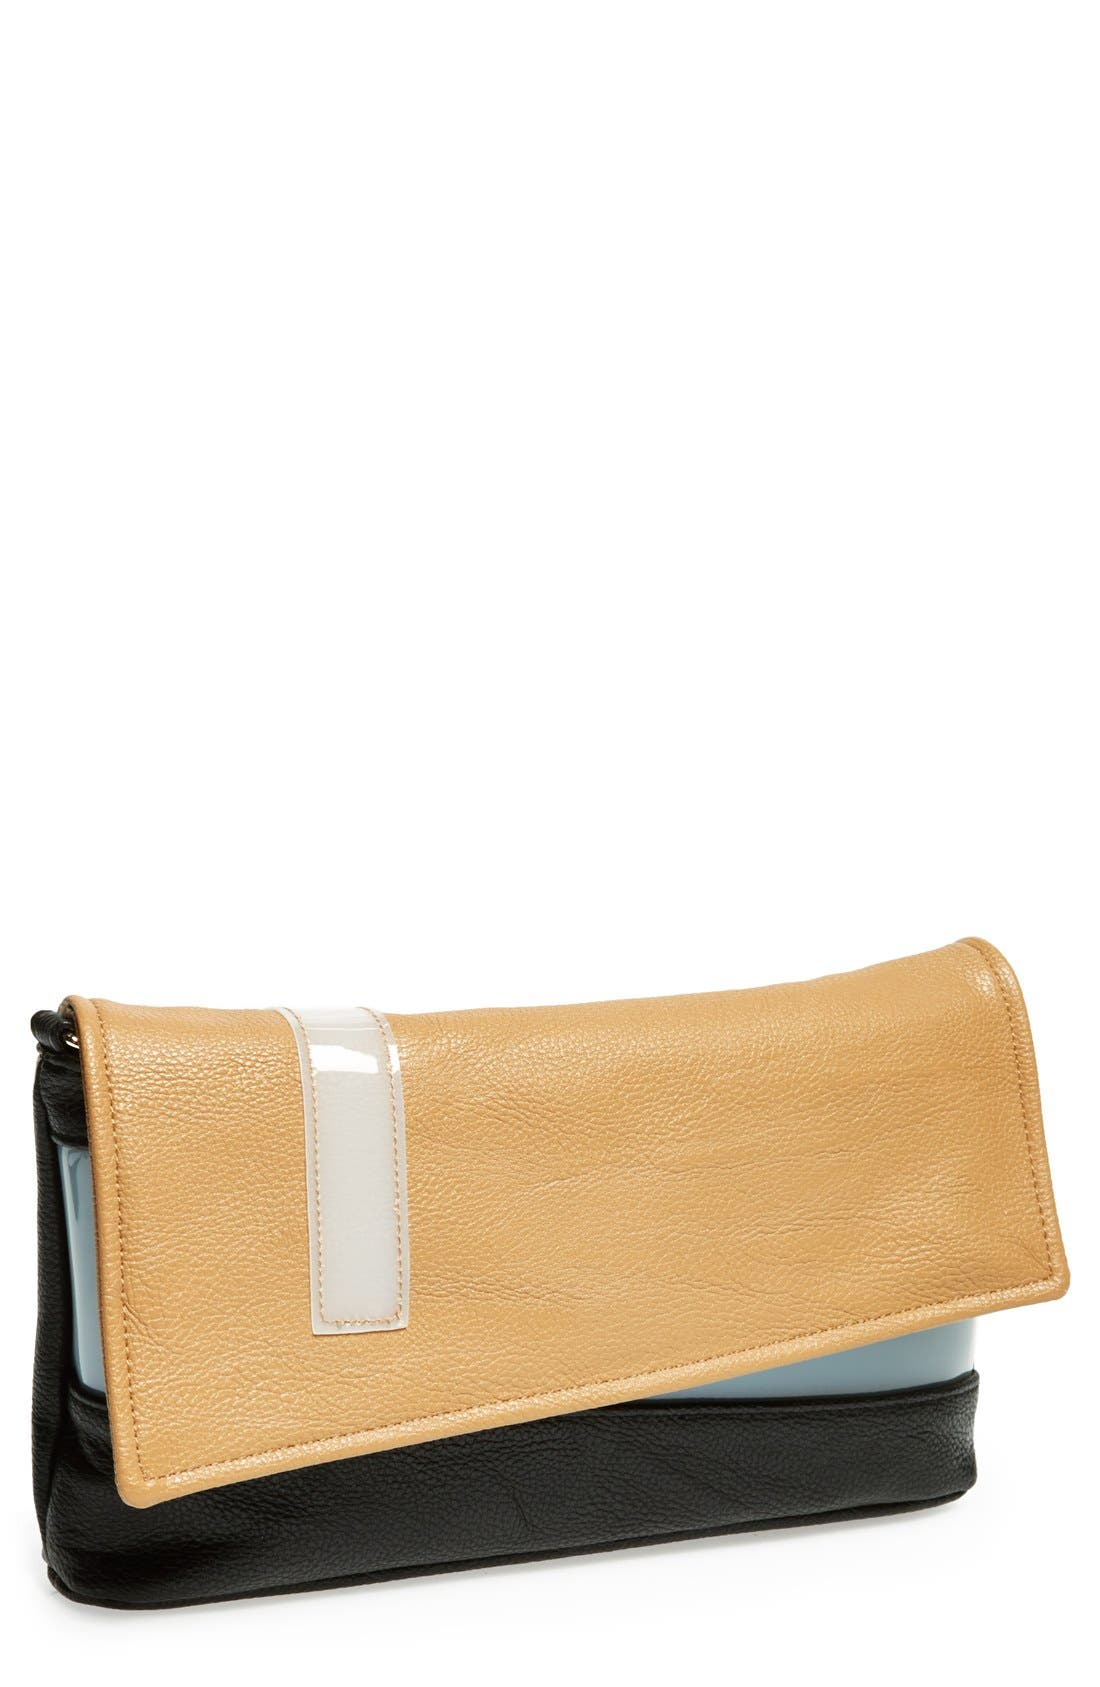 Main Image - POVERTY FLATS by rian Colorblock Flap Clutch